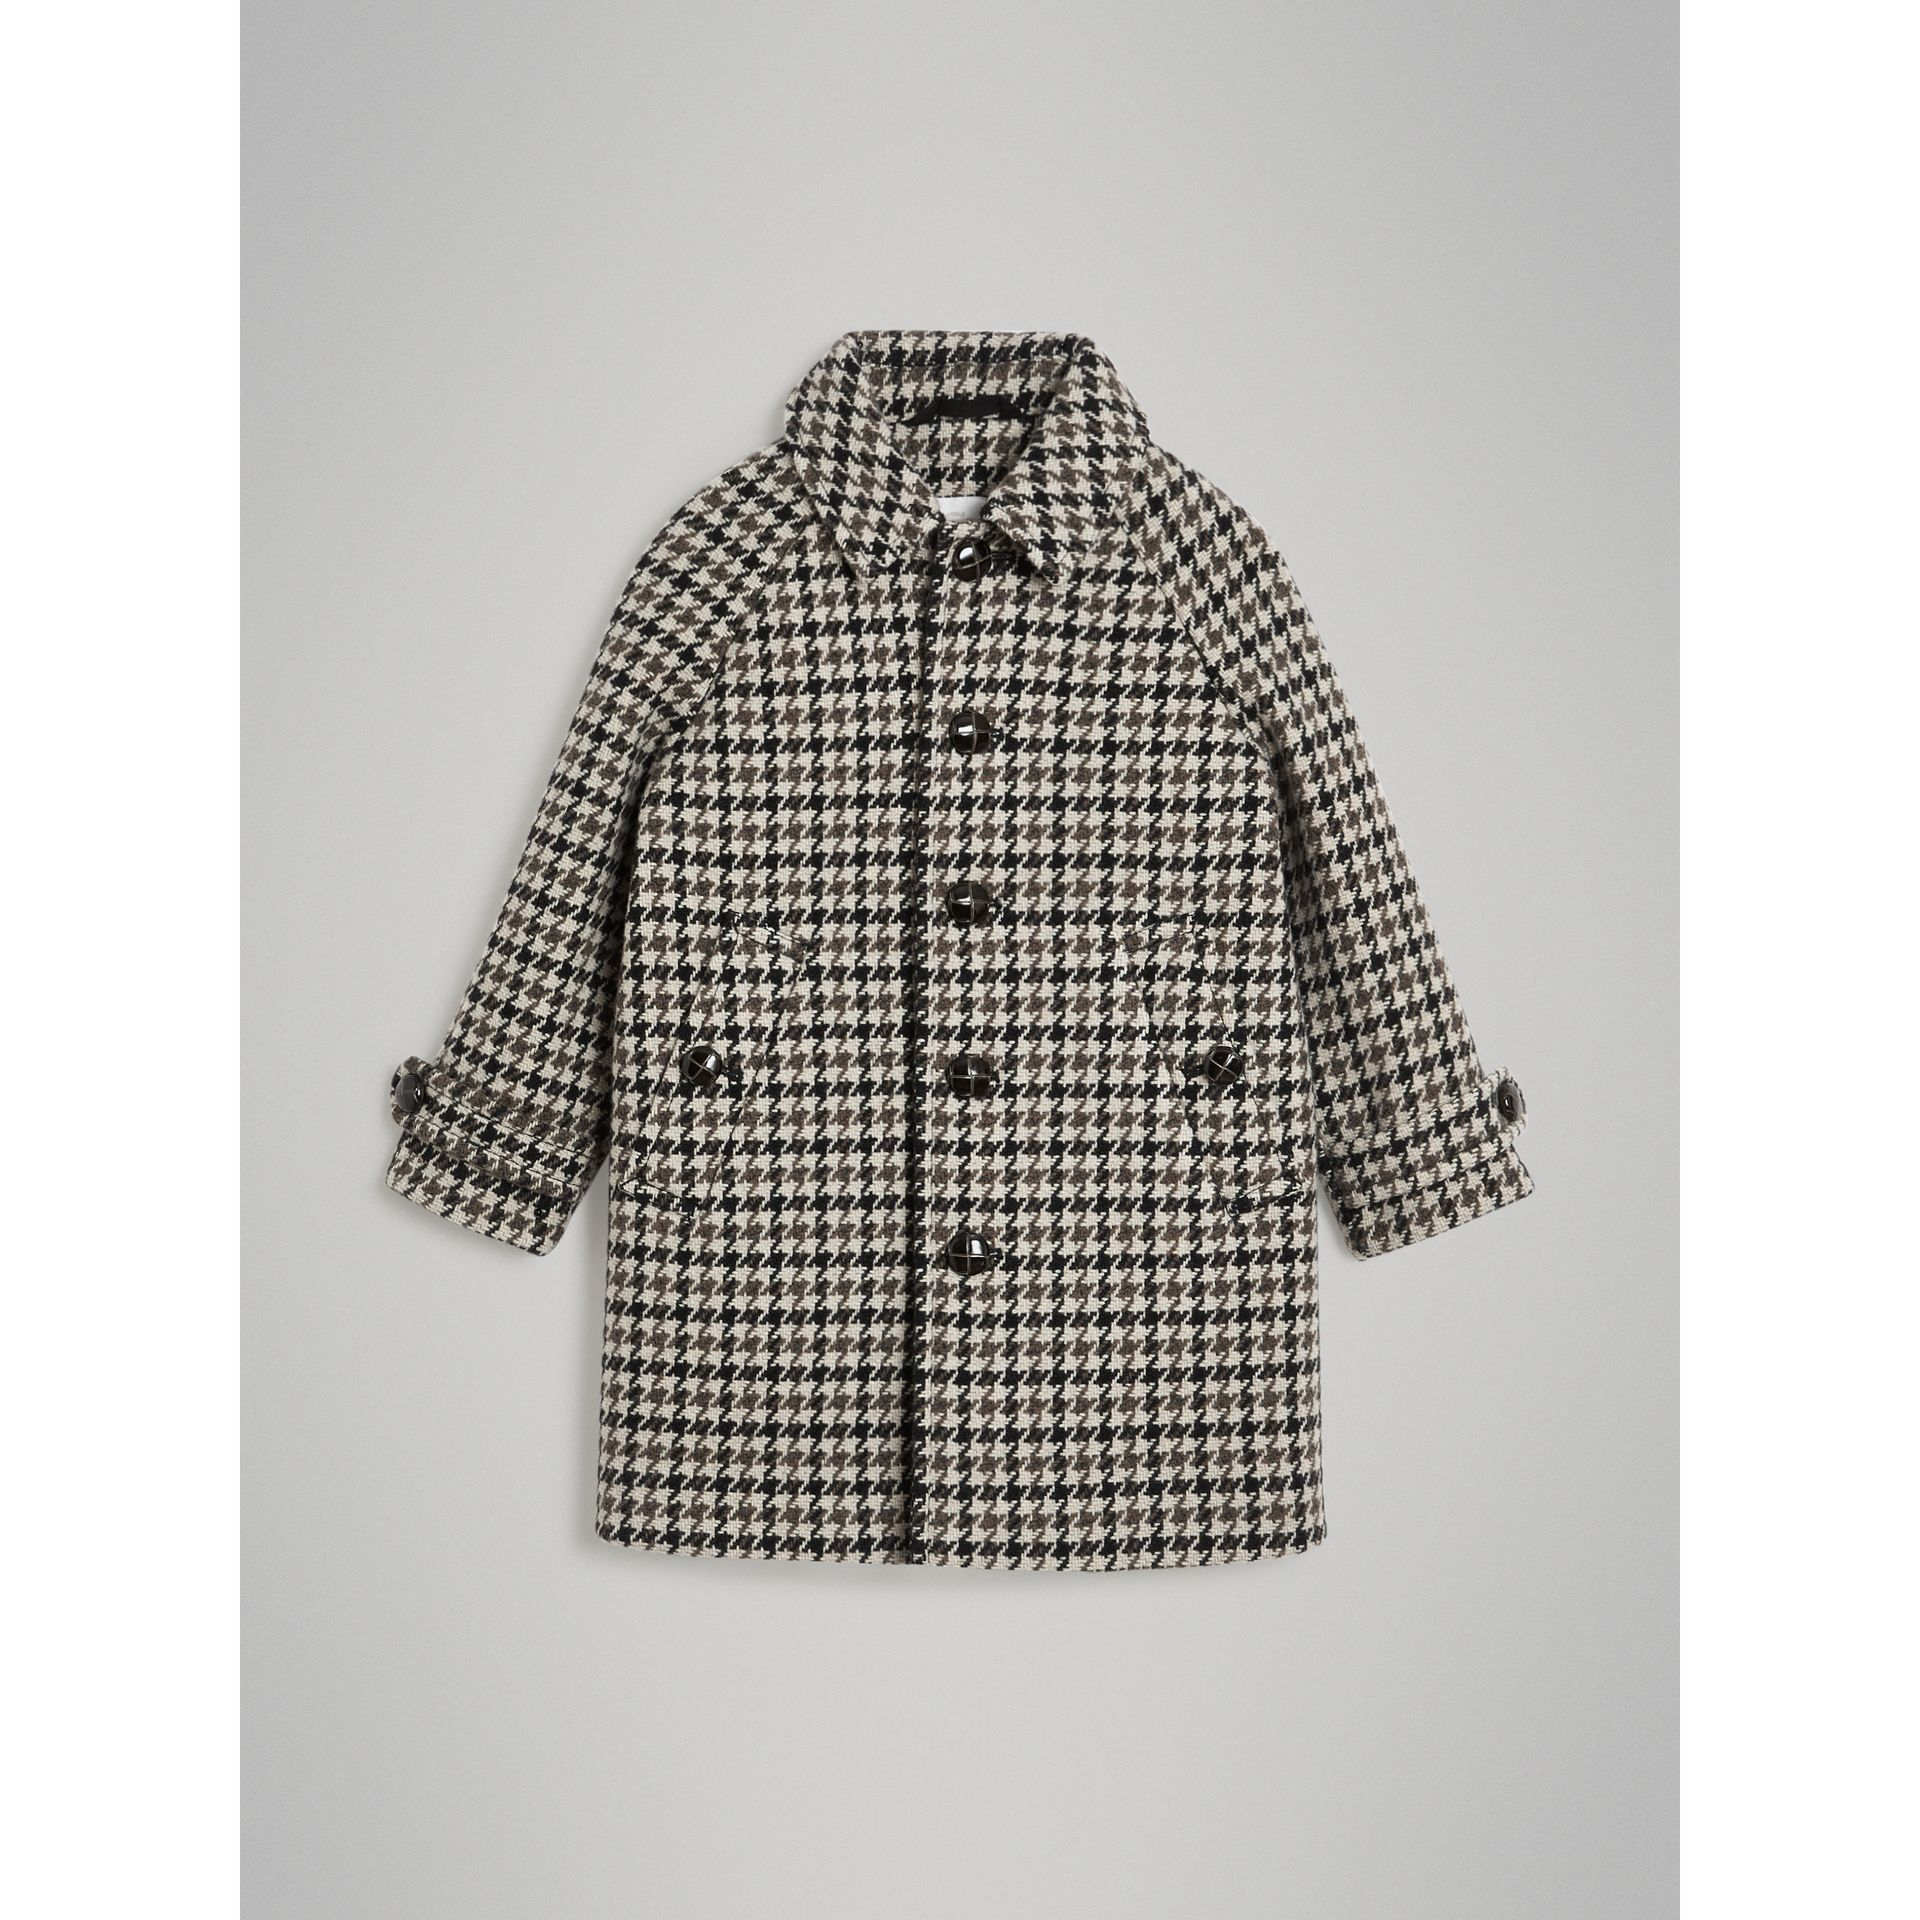 Houndstooth Check Wool Cashmere Blend Coat in Mid Grey | Burberry United States - gallery image 0